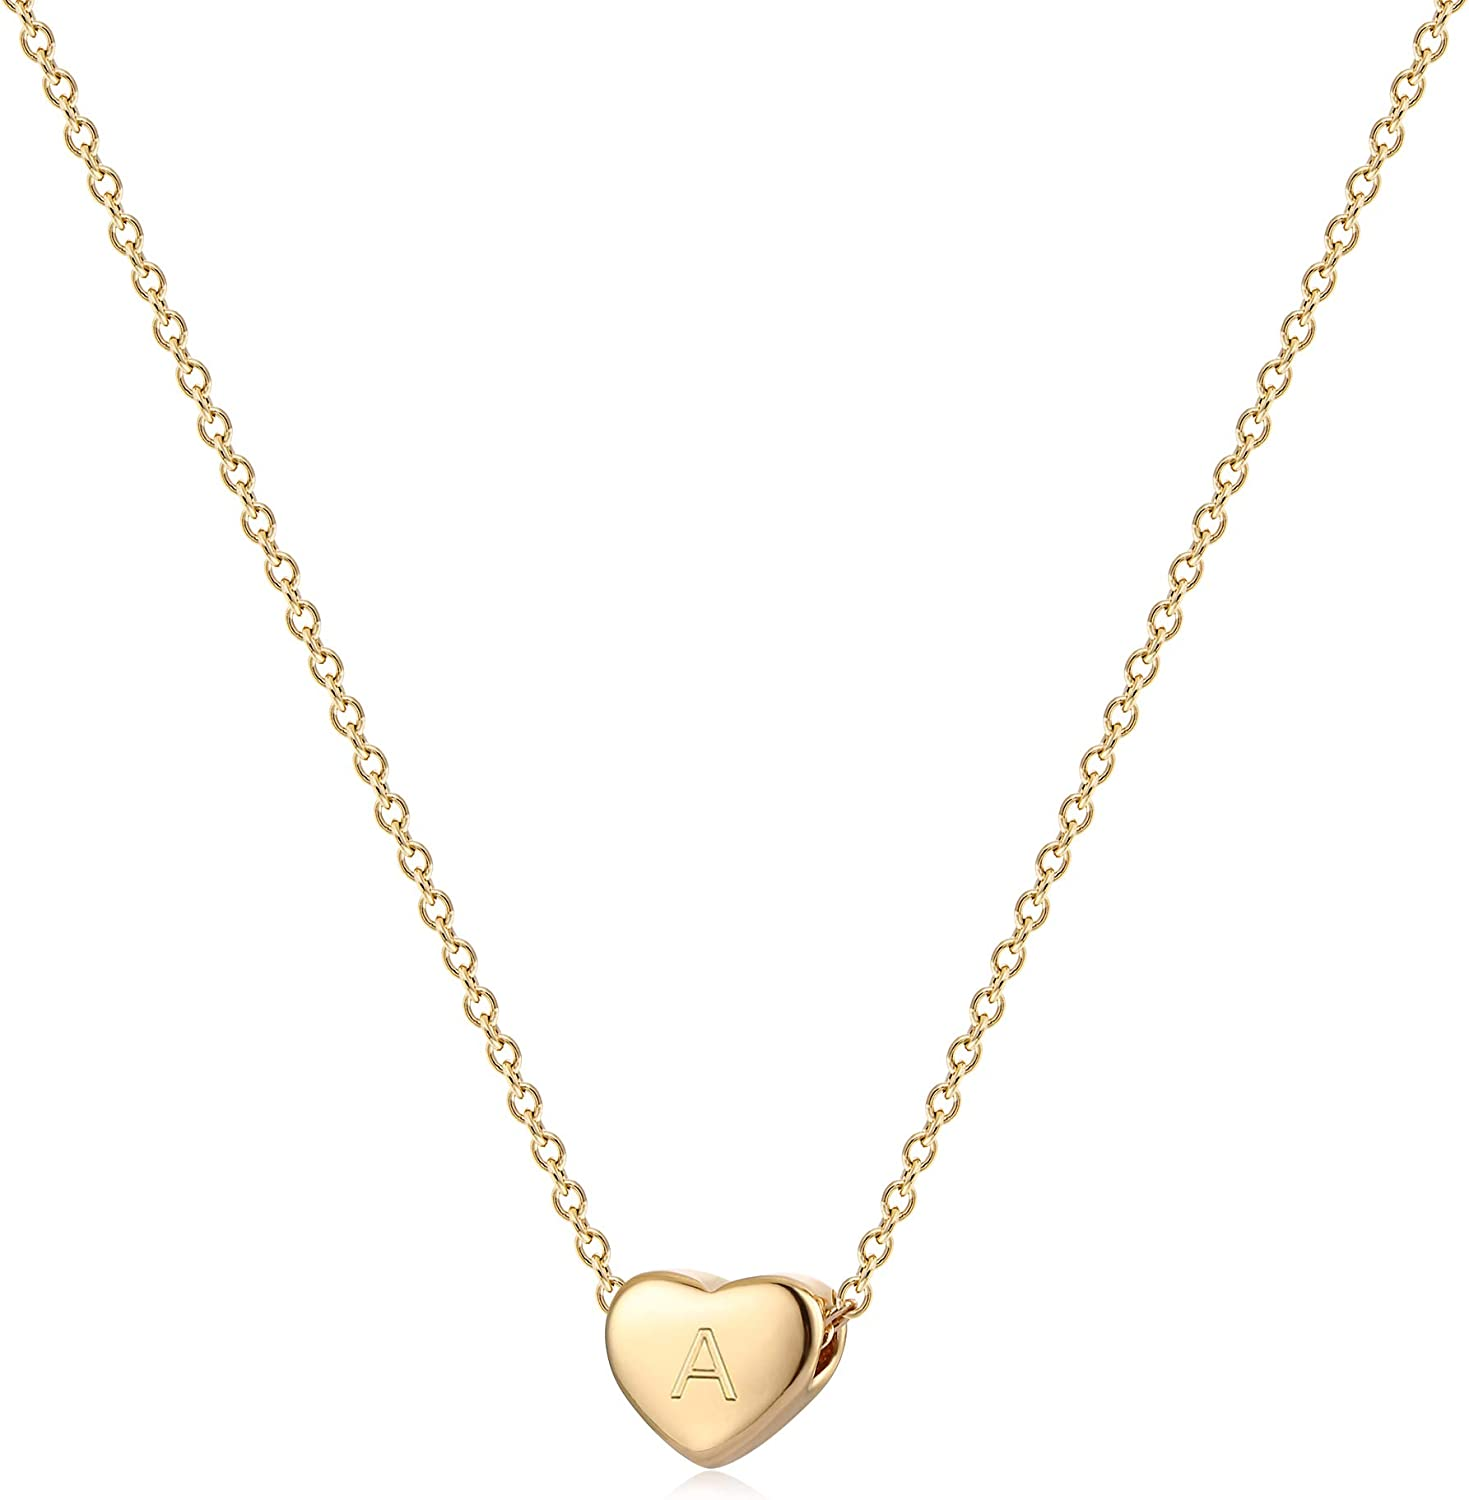 Valloey Rover Tiny Gold Initial Heart Necklace, 14k Gold Plated Delicate Cute Dainty Charm Initial Alphabet Letter Love Heart Choker Necklaces for Women Personalized